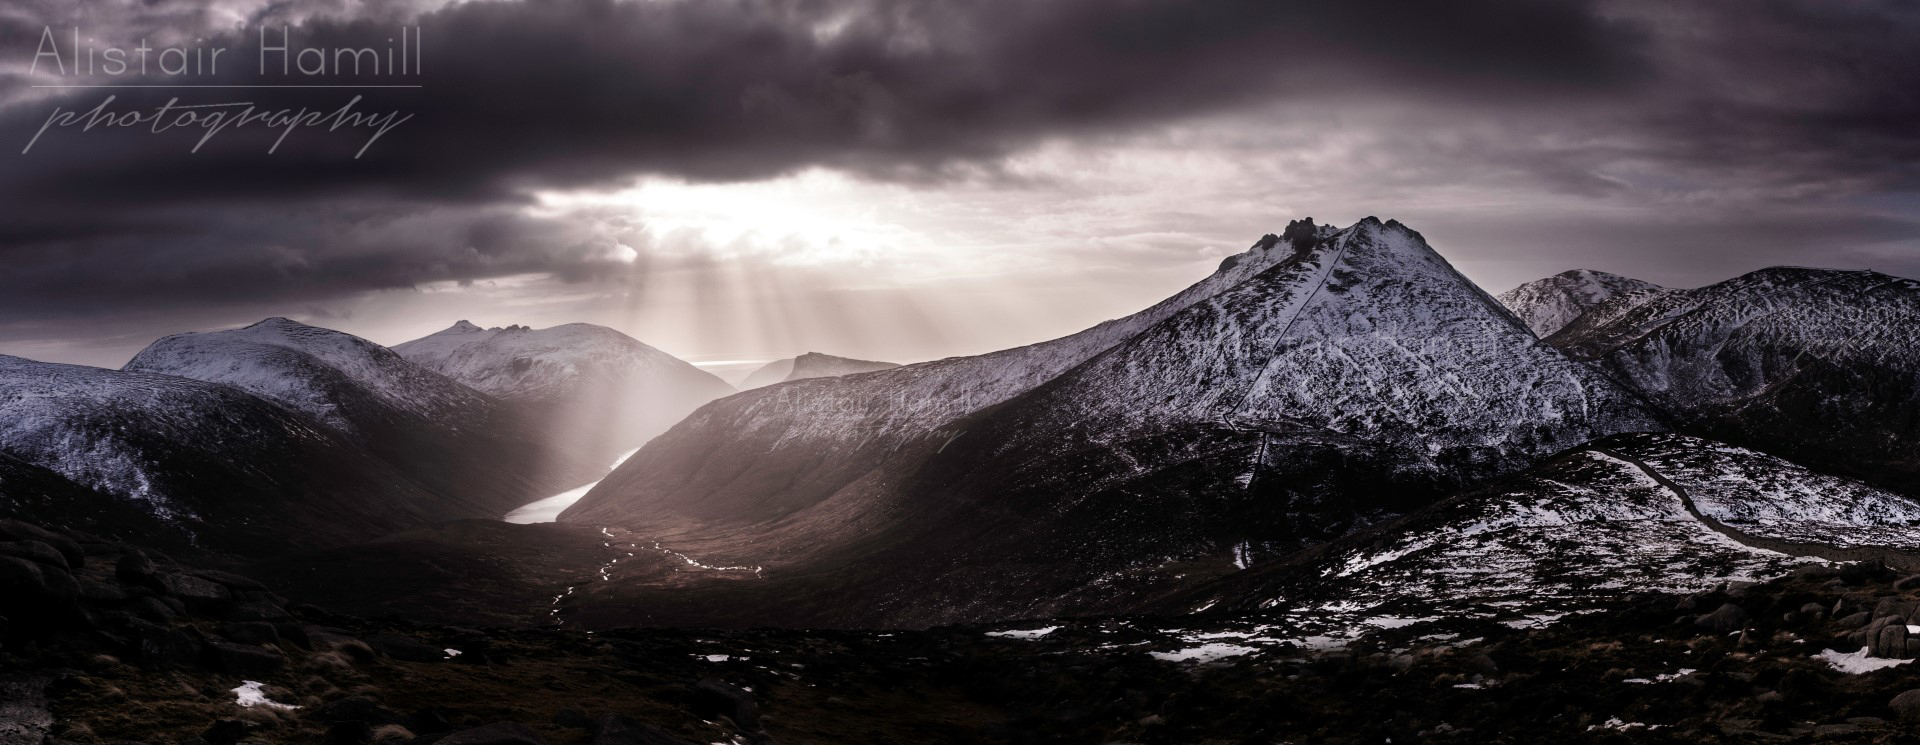 The summit of Bearnagh rises majestically over Ben Crom valley, bathed in the shafts of some winter light.